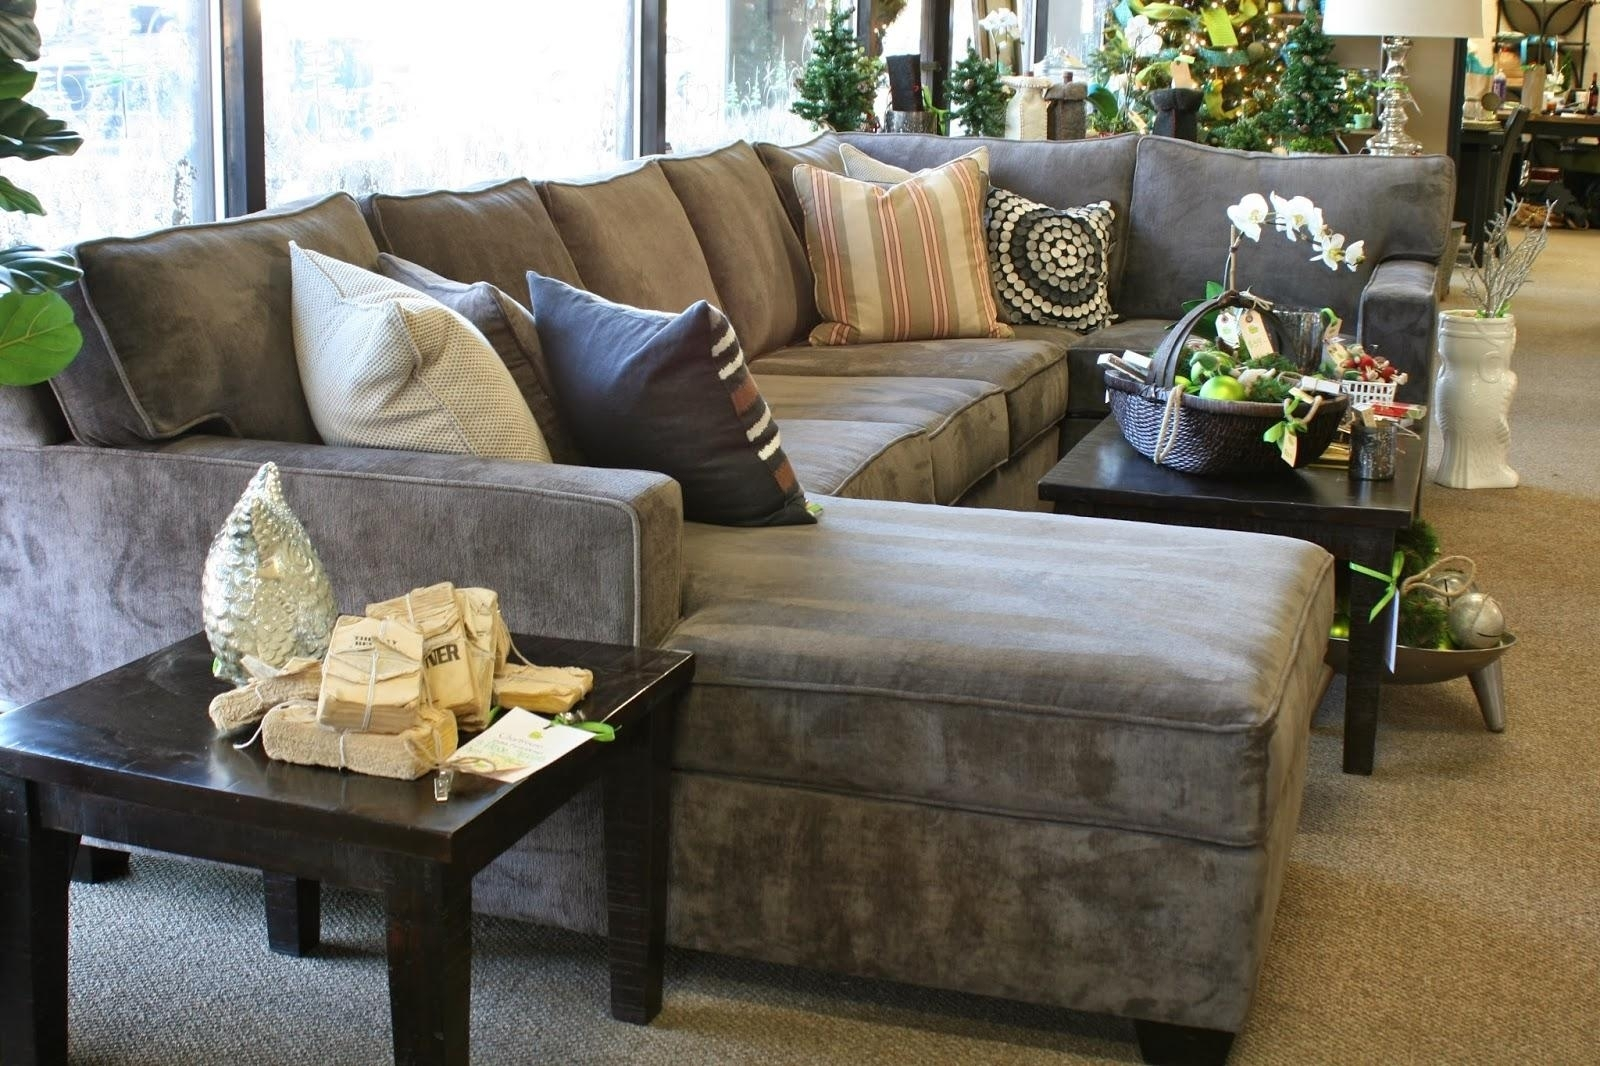 20 Ideas Of Lee Industries Sectional | Sofa Ideas Pertaining To Lee Industries Sectional Sofas (Photo 7 of 10)